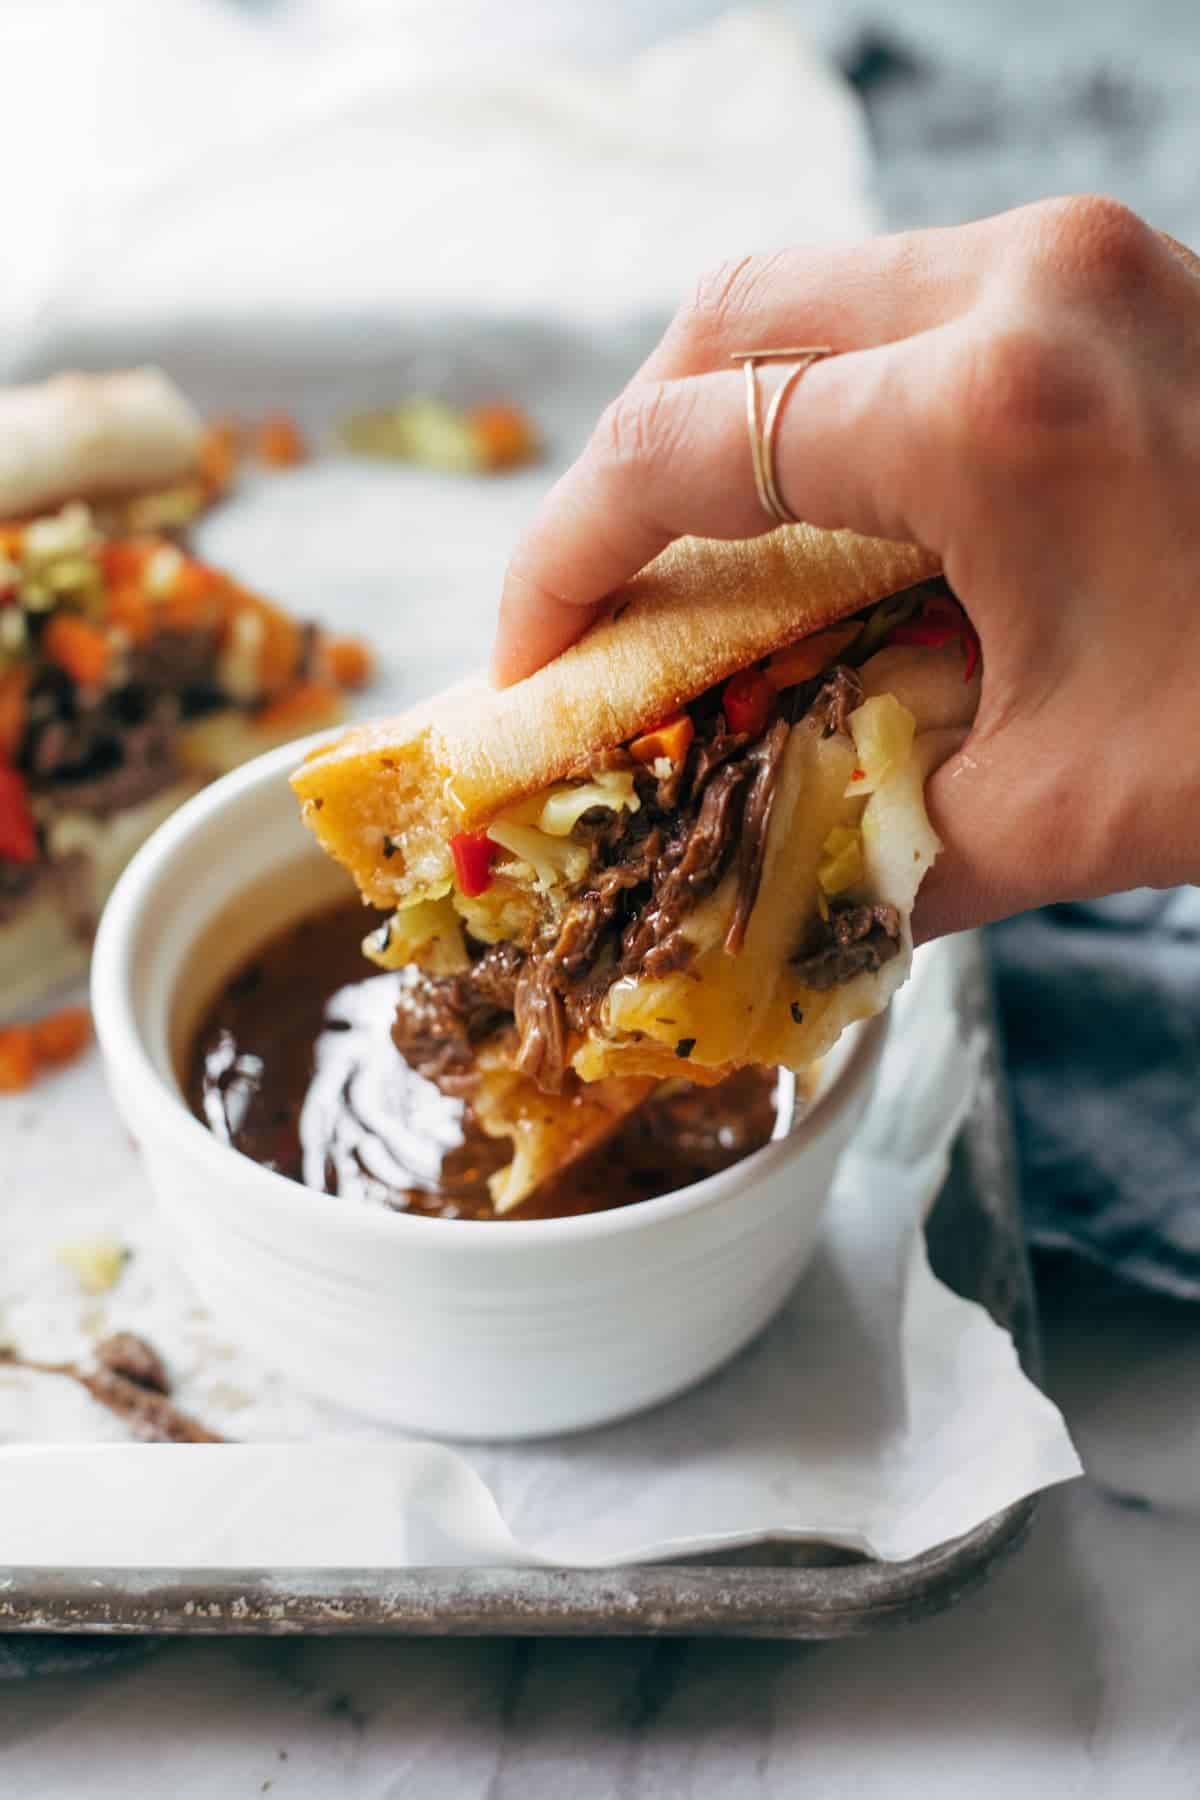 Dipping Italian beef sandwich into sauce.